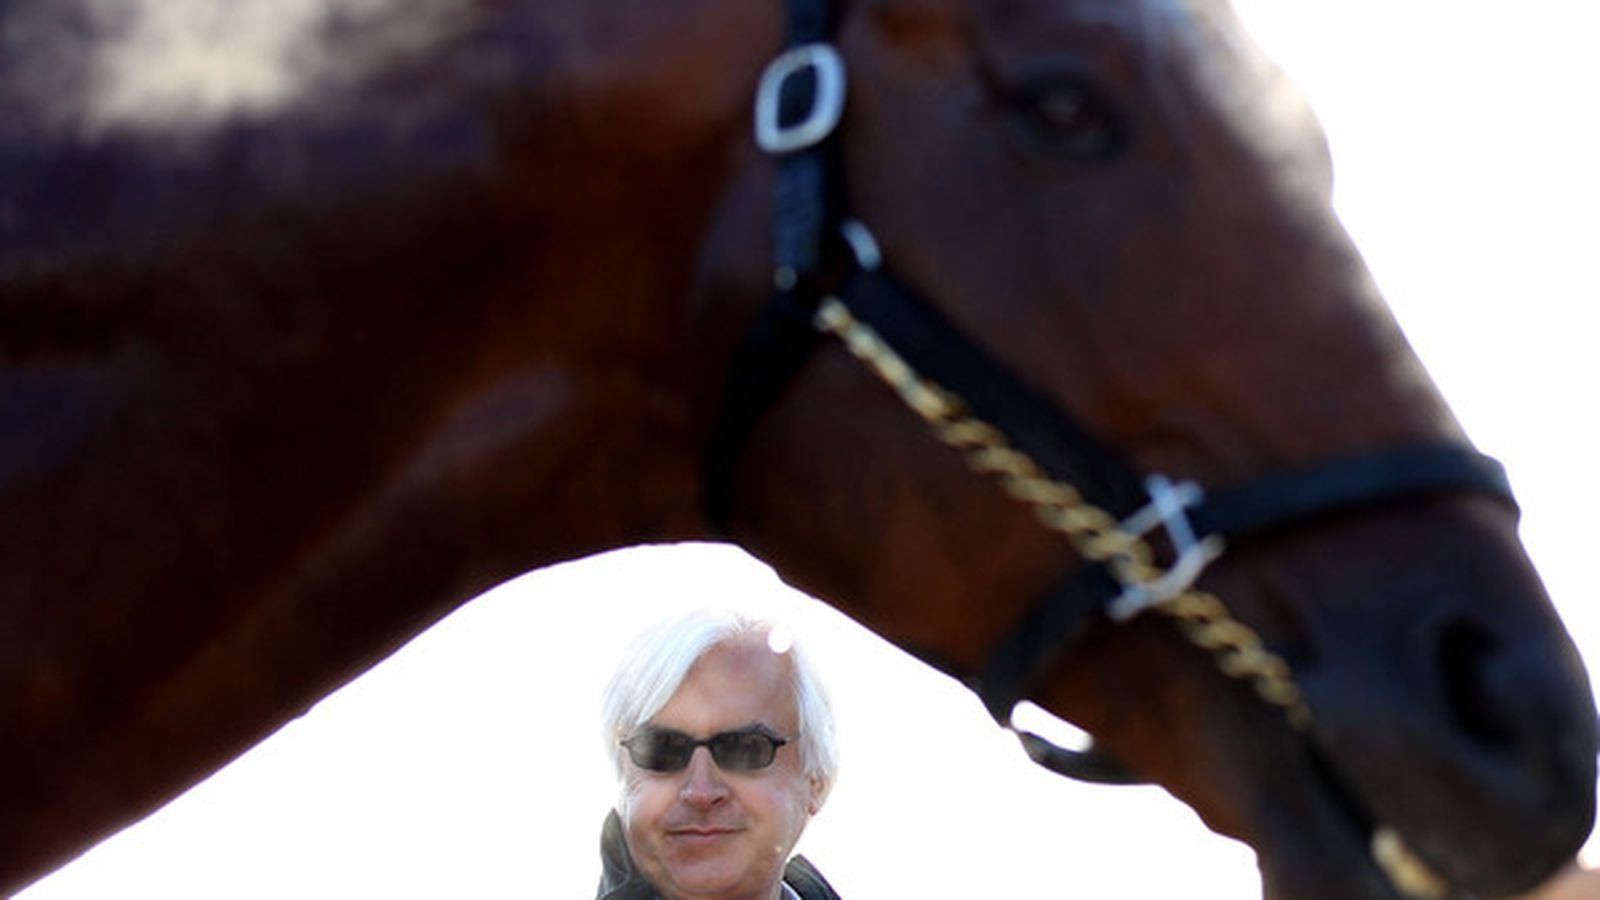 Sunland Park Derby 2013: Entries, Post Positions & Odds ...